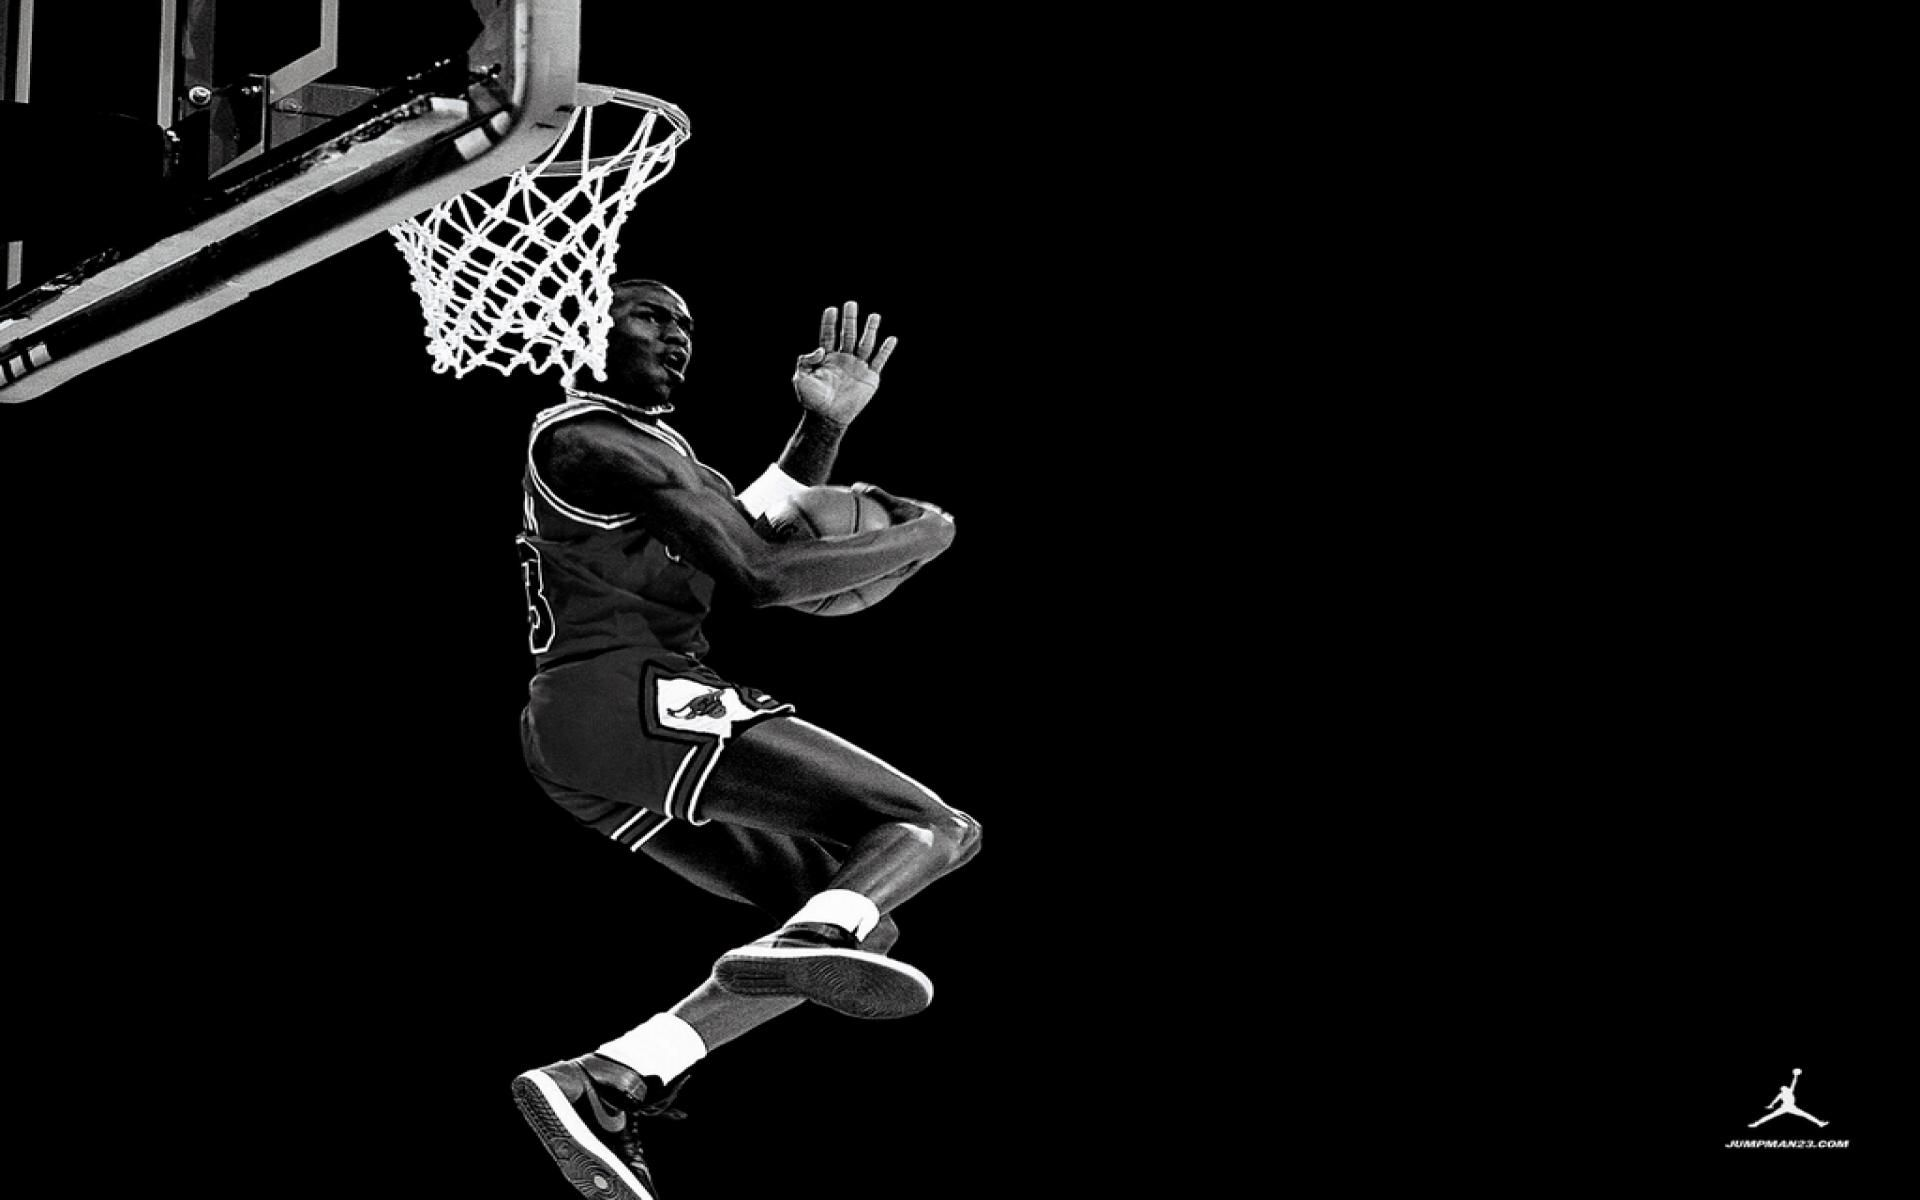 1920x1200 42 wallpapers with Michael Jordan - Qulari.com